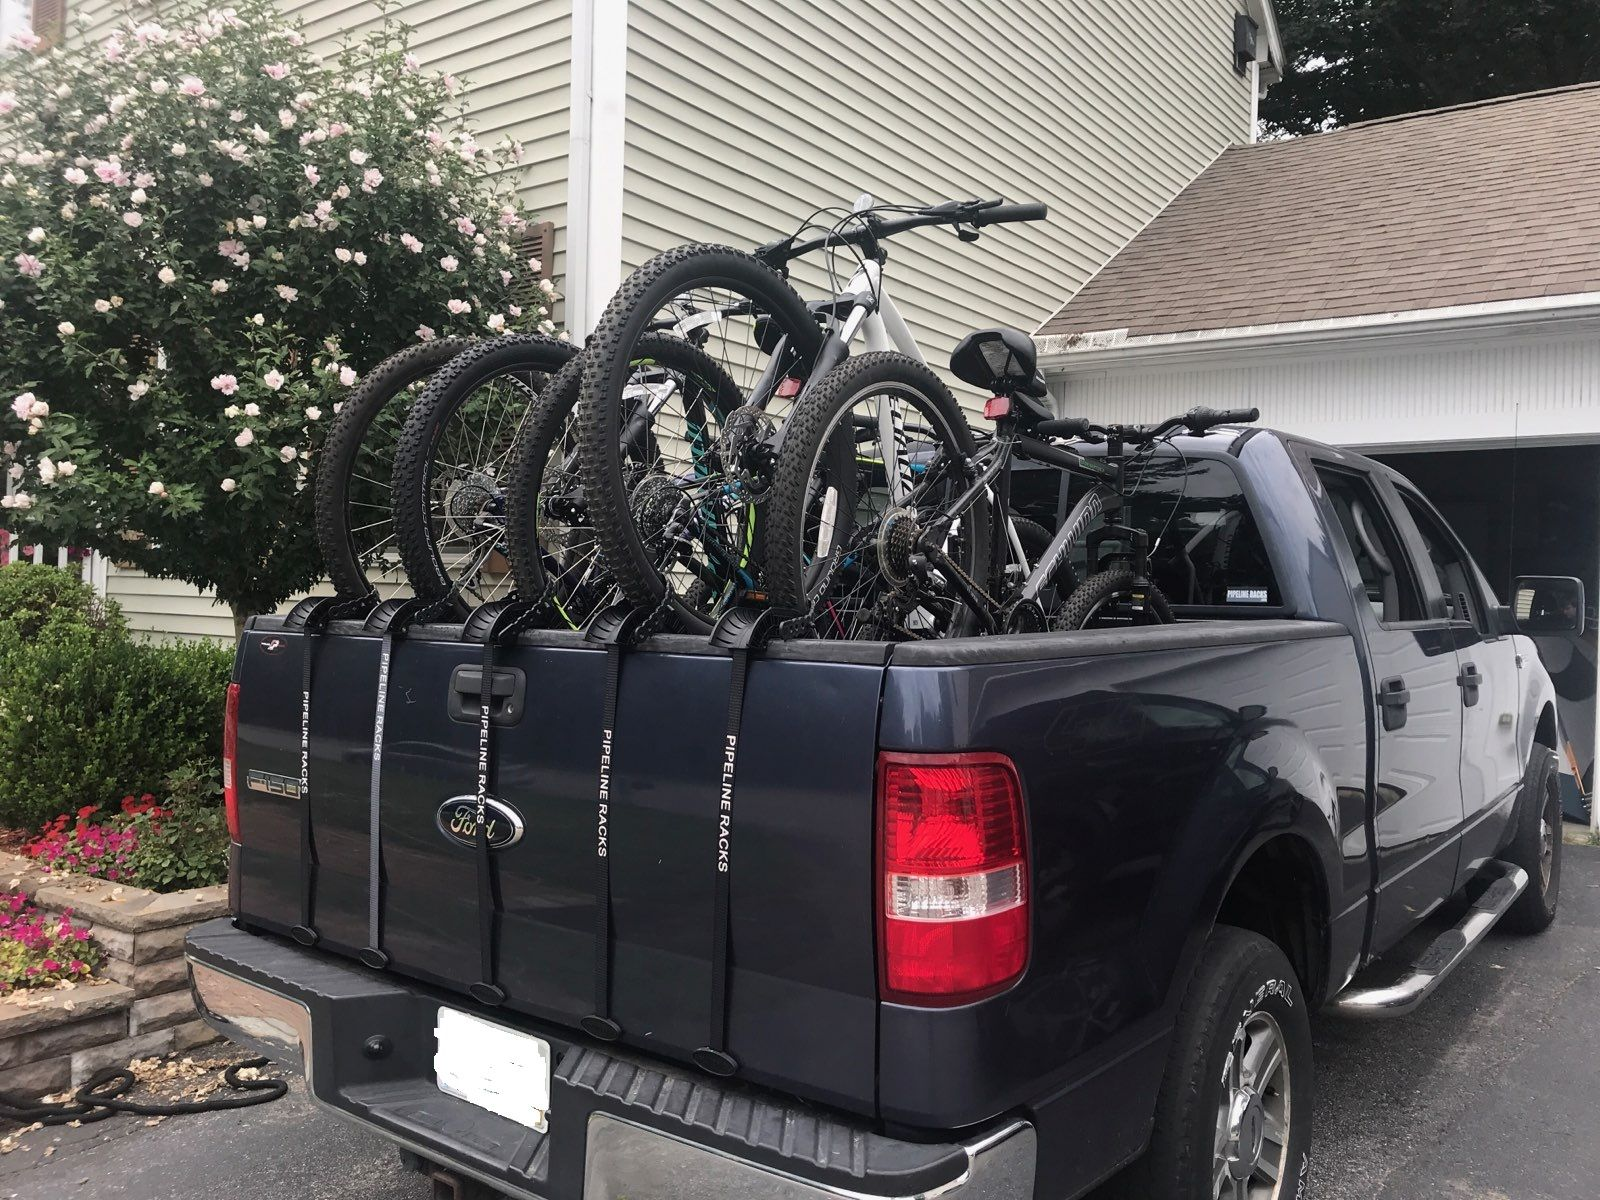 5 Bikes With Tailgate Up With Pipeline Rack S T Gator Bike Coach Swagger Bag Gator